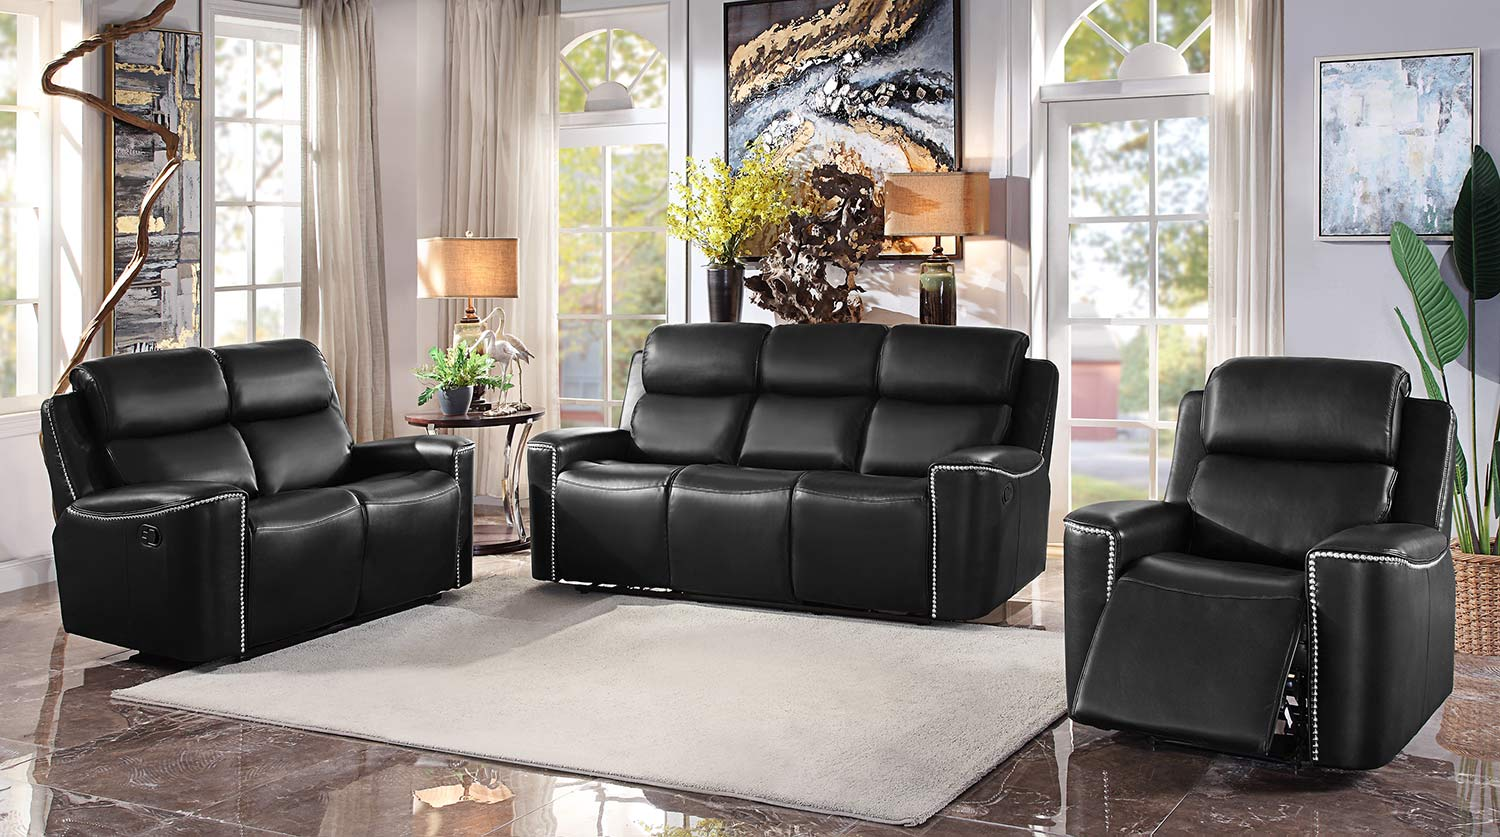 Homelegance Altair Reclining Sofa Set - Black